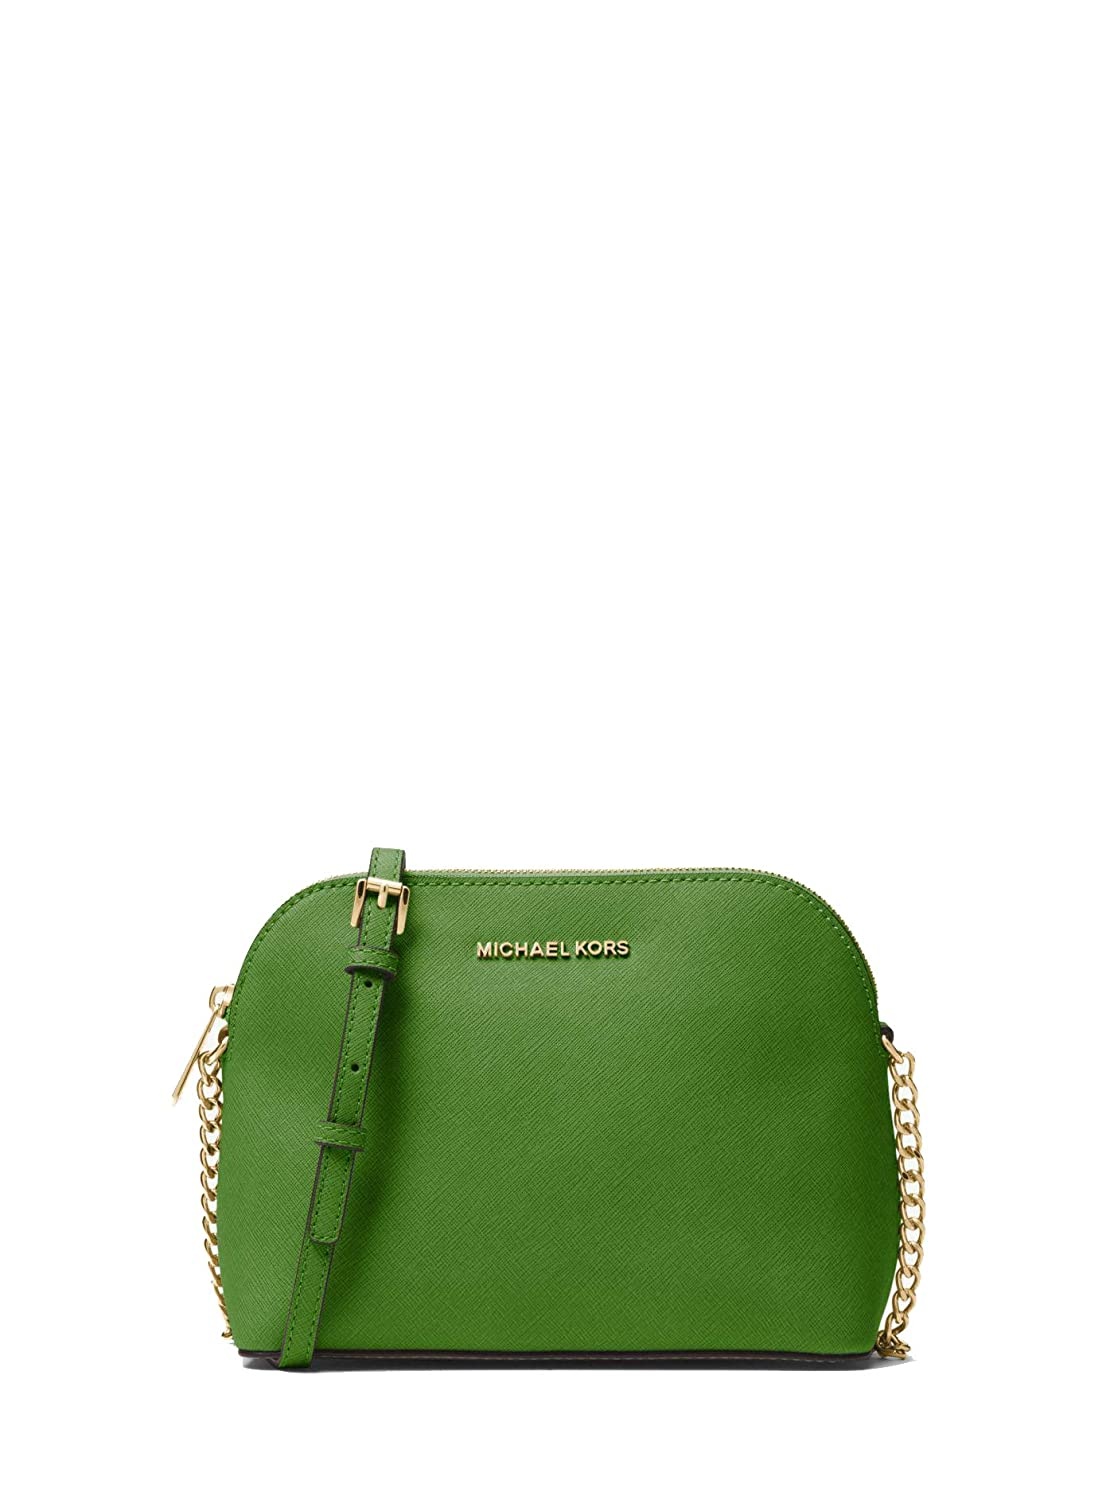 2eb09f45764e MICHAEL MICHAEL KORS Cindy Large Saffiano Leather Crossbody  Handbags   Amazon.com